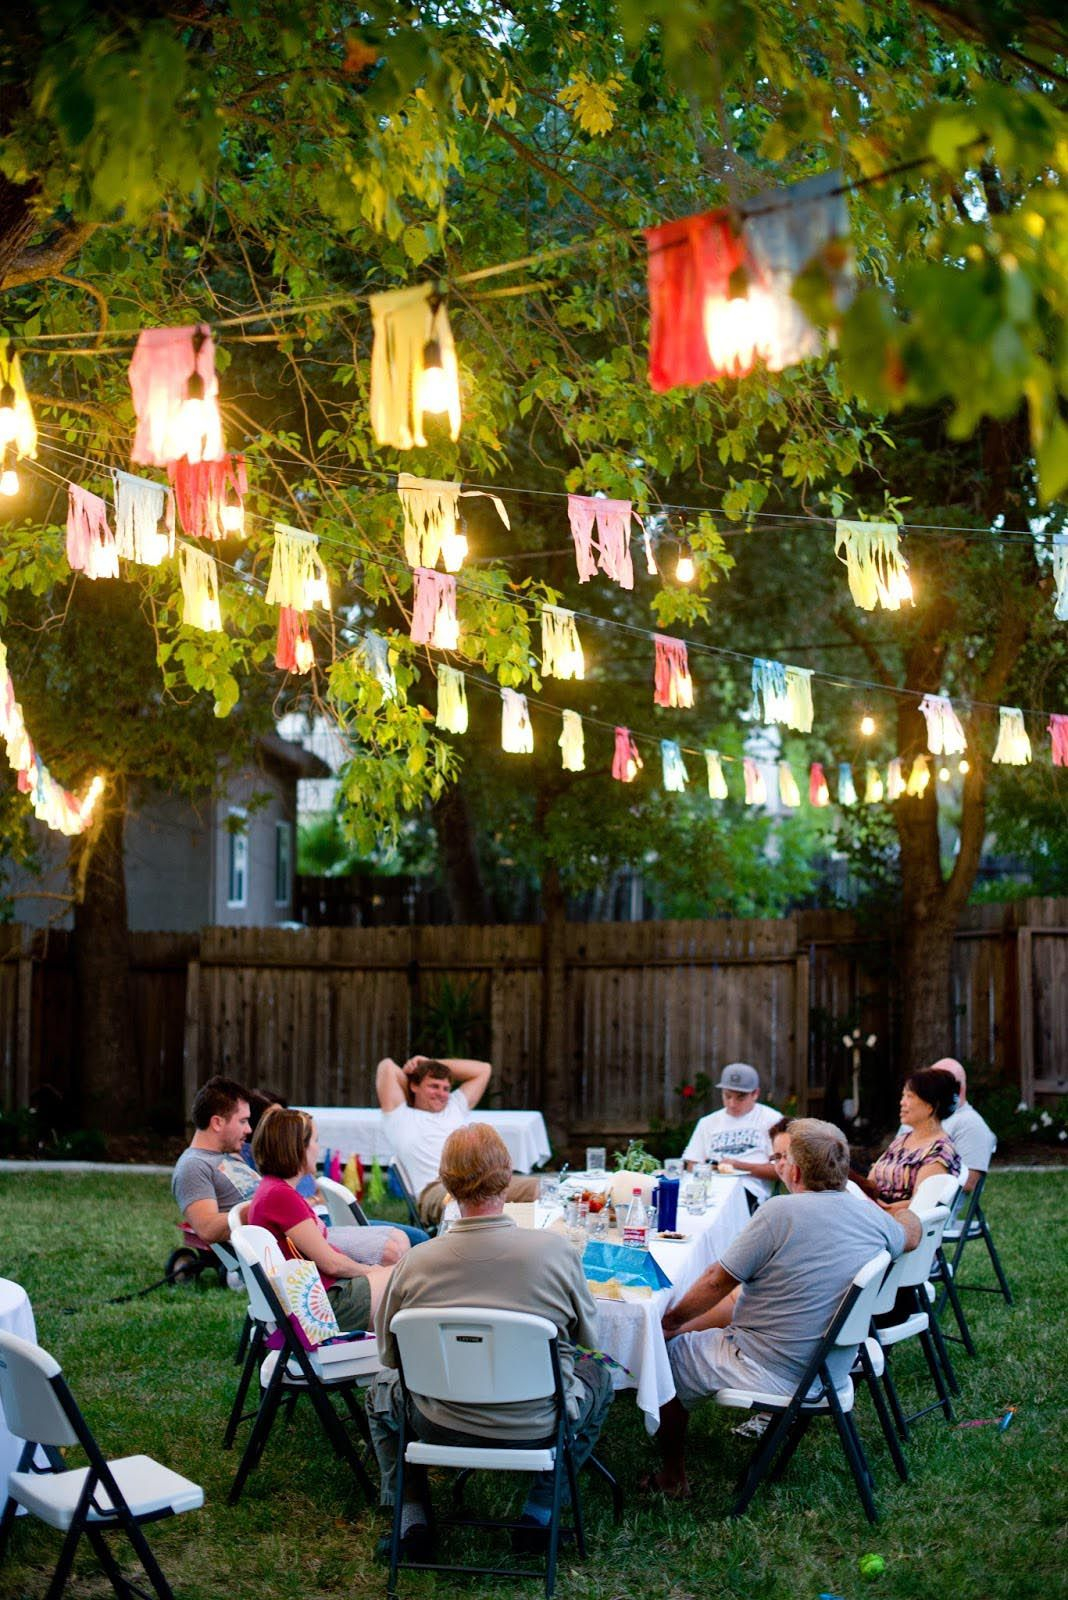 Birthday Party Outdoor Games Party Ideas In 2019 Yard Party pertaining to 15 Smart Concepts of How to Make Backyard Birthday Party Ideas For Adults